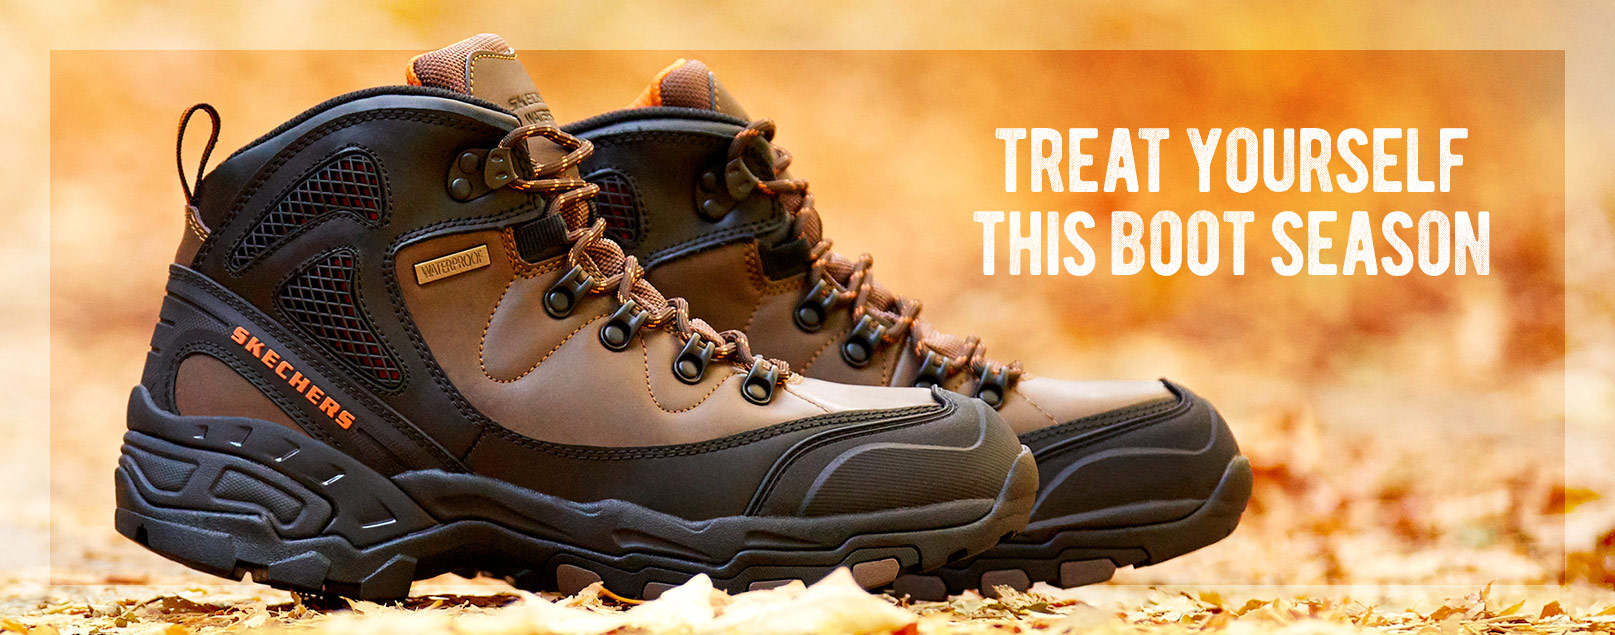 Shop for gifts for men on Skechers.com including the best selection of sizes and widths for guys.  From dress shoes to Streetwear casuals to athletic trainers and Performance Golf shoes, there's something for every man.